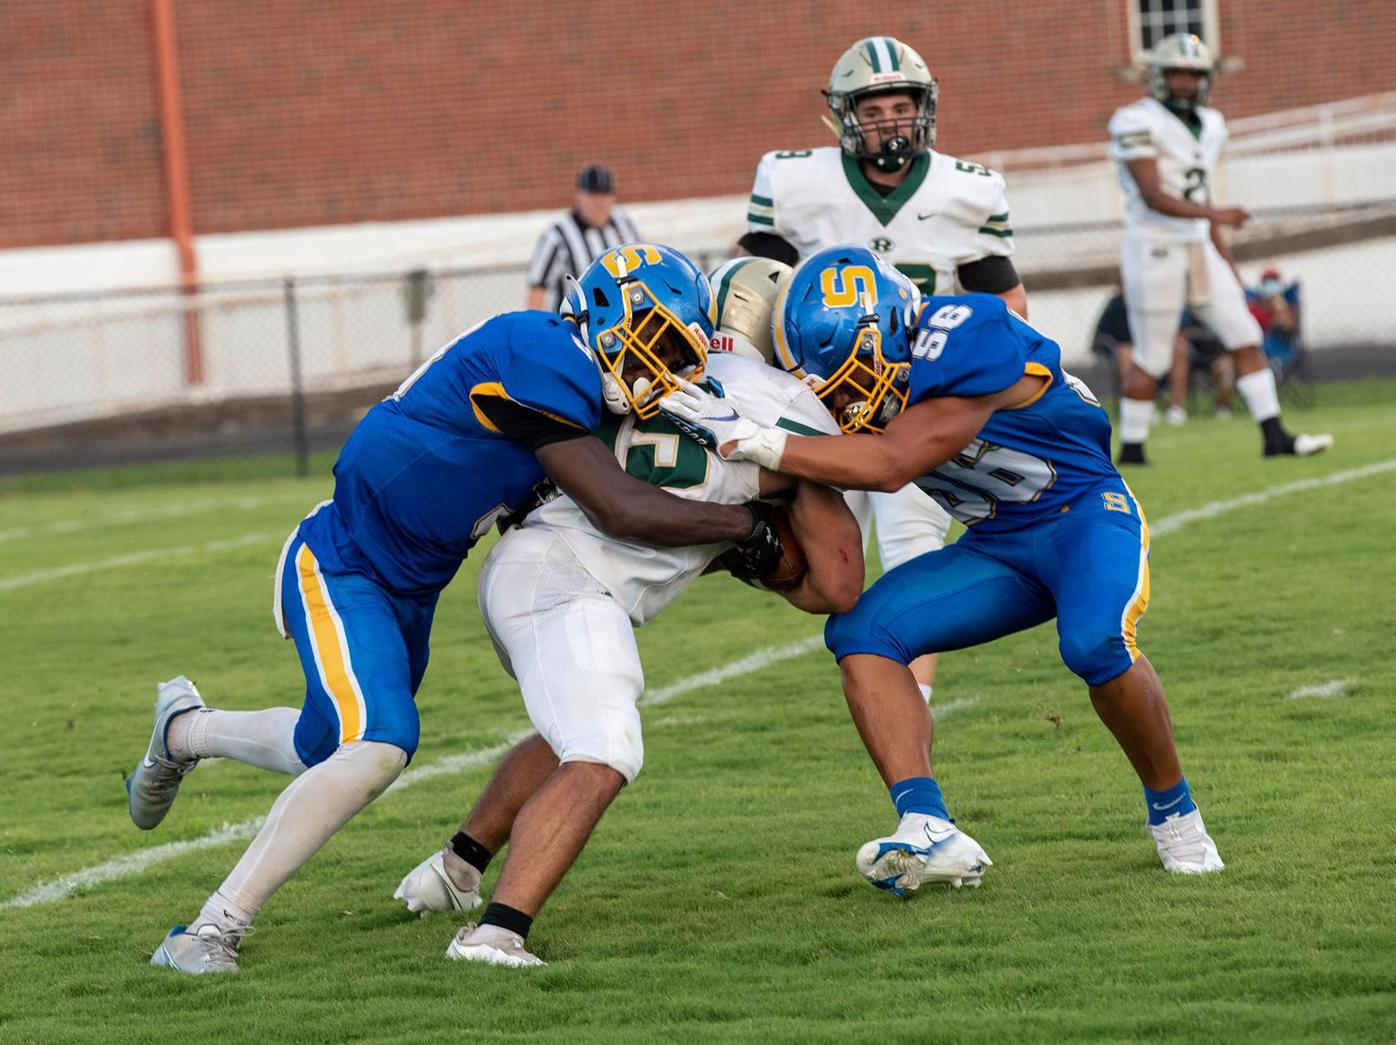 Sweetwater team tackle